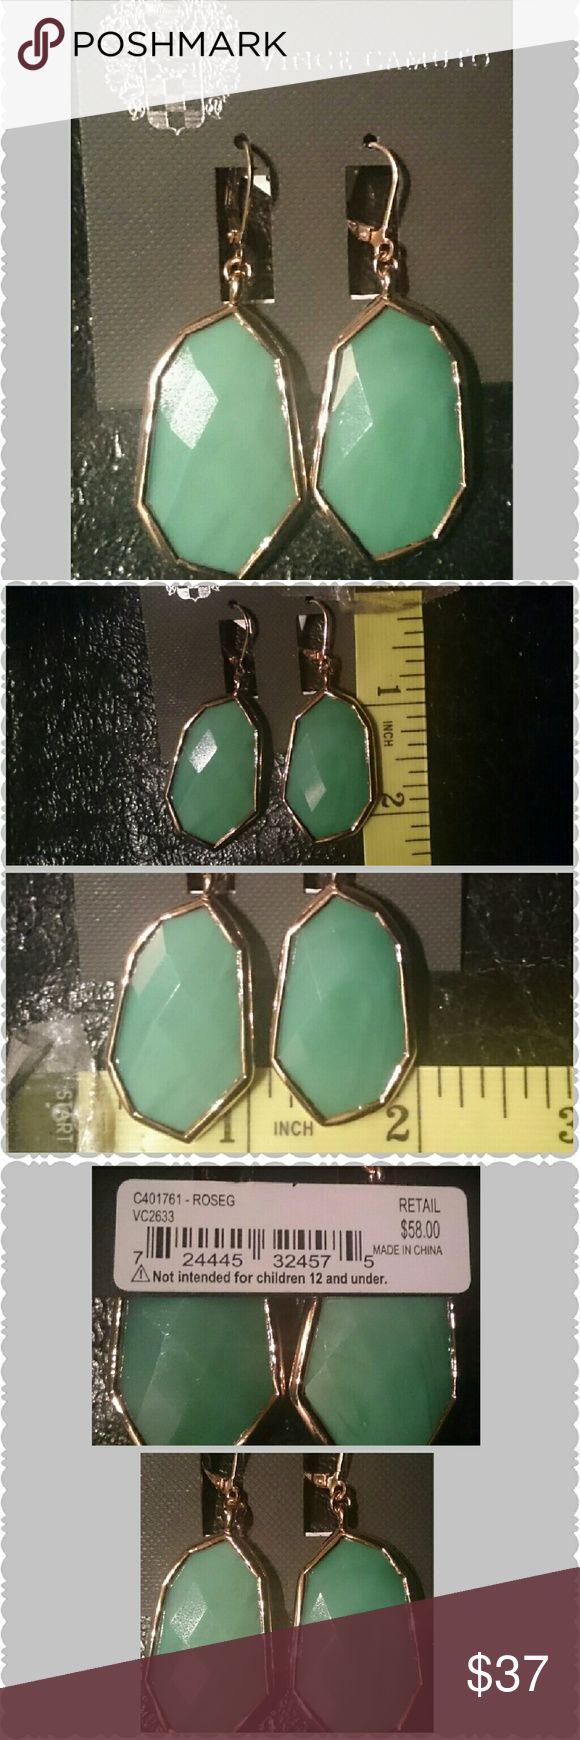 BE THE SCENERY EARRINGS SOFT POWER Sold out At 58.00 Enjoy the Timeless fashion of Vince Camuto earrings Yes, from the morning business meeting through dinner and Dancing a quick Fashion Statement that creates the You that You want People to Remember Vince Camuto Jewelry Earrings